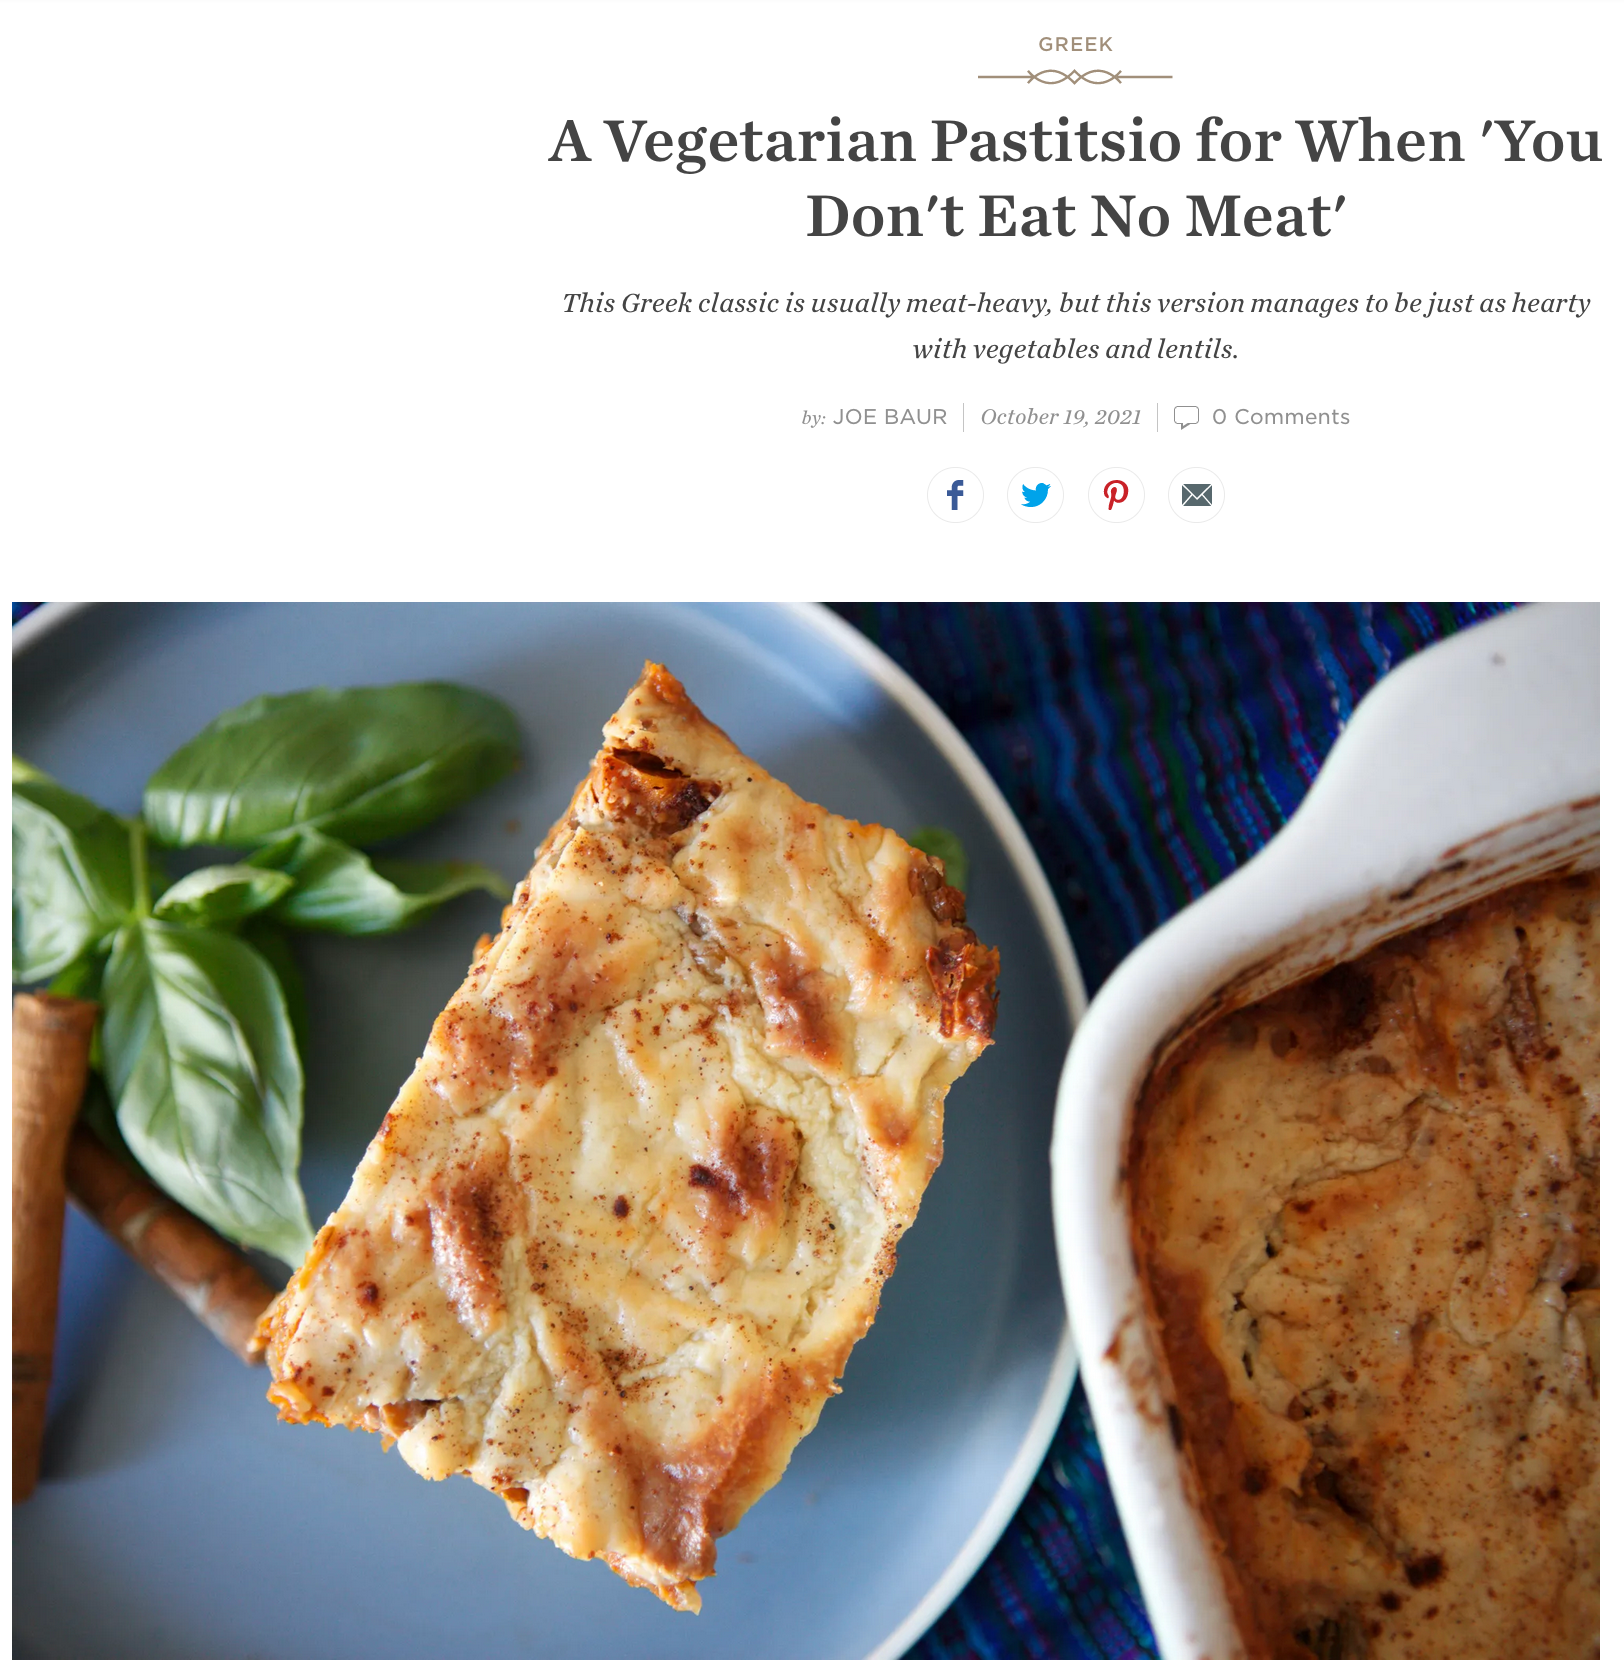 A Vegetarian Pastitsio for When 'You Don't Eat No Meat' - Food52